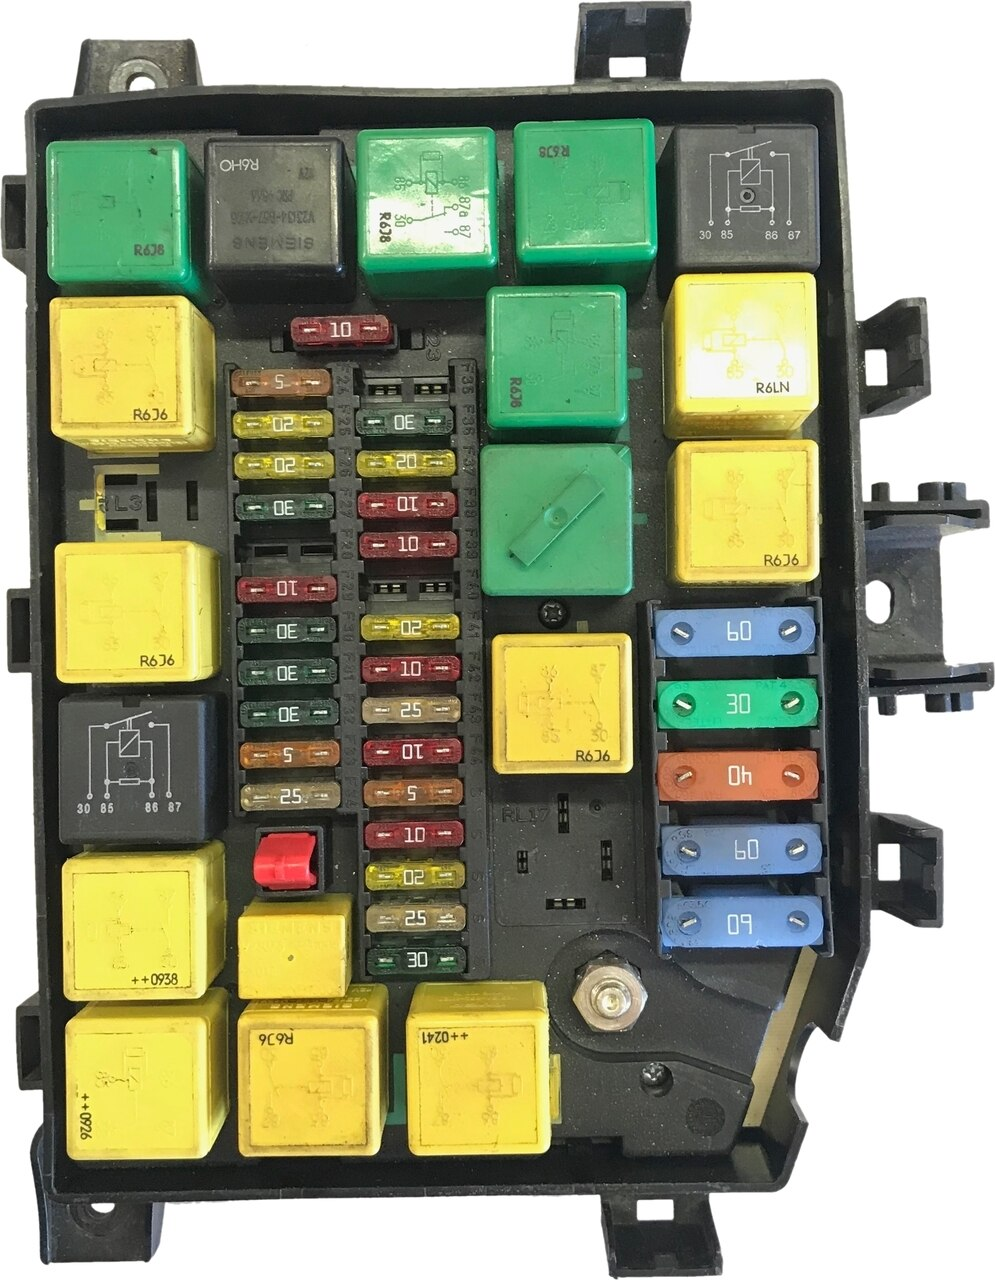 1999 Range Rover Fuse Box - Wiring Diagram Replace bear-process -  bear-process.miramontiseo.it | 99 Range Rover Sport Fuse Diagram |  | bear-process.miramontiseo.it